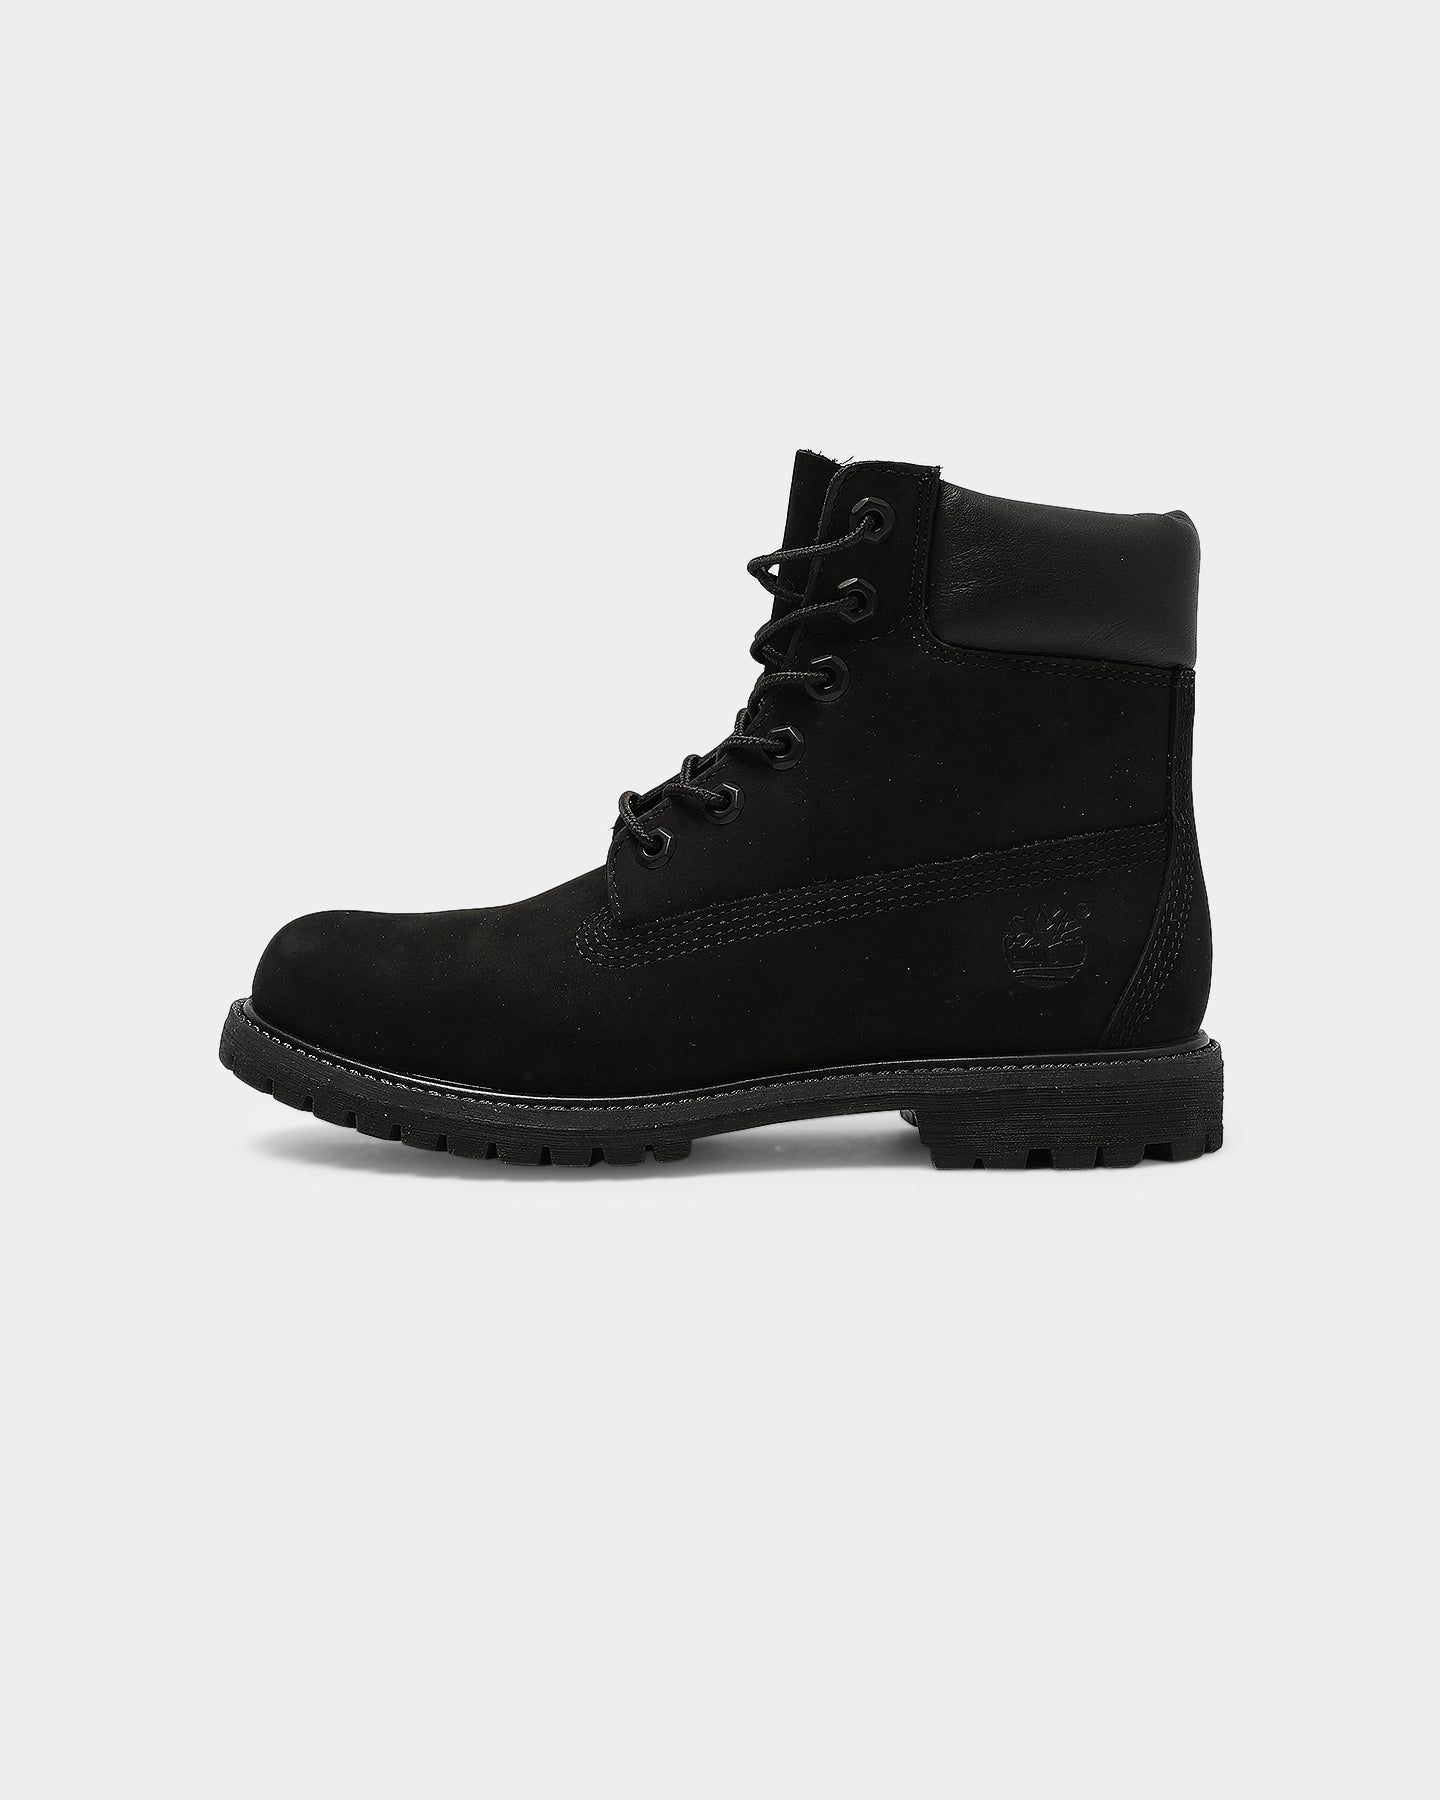 Timberland Womens Boots Black | Culture